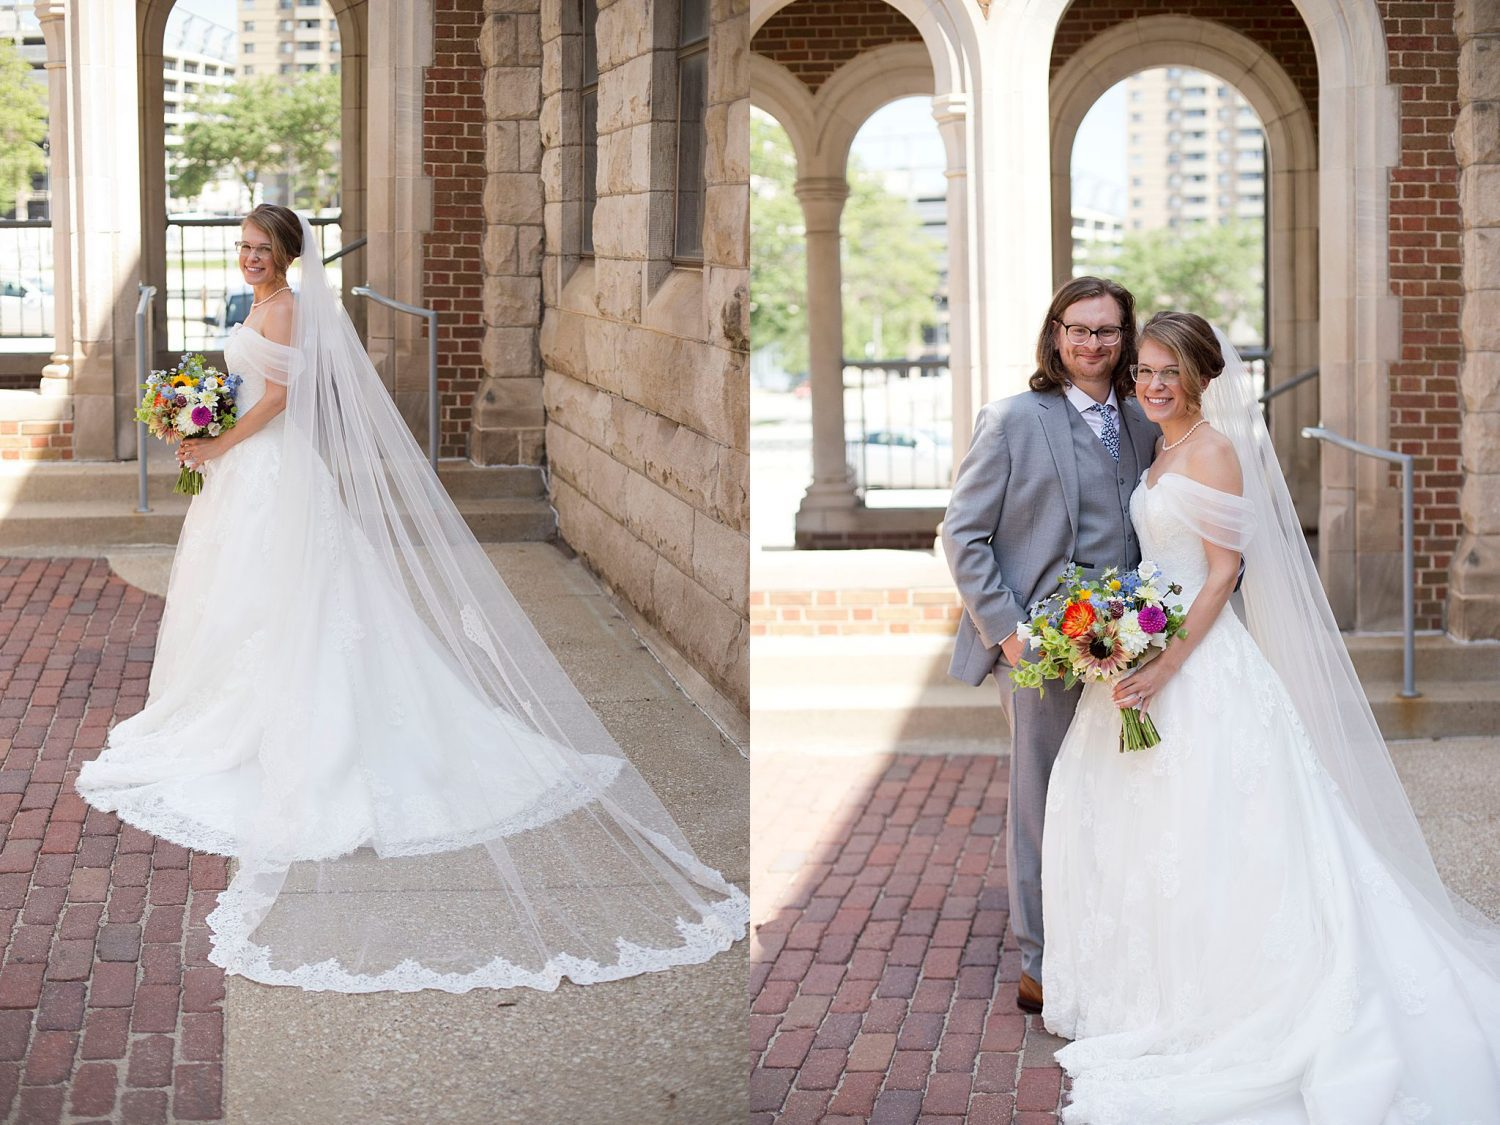 The bride poses in the courtyard of St Ambrose Cathedral in Des Moines.